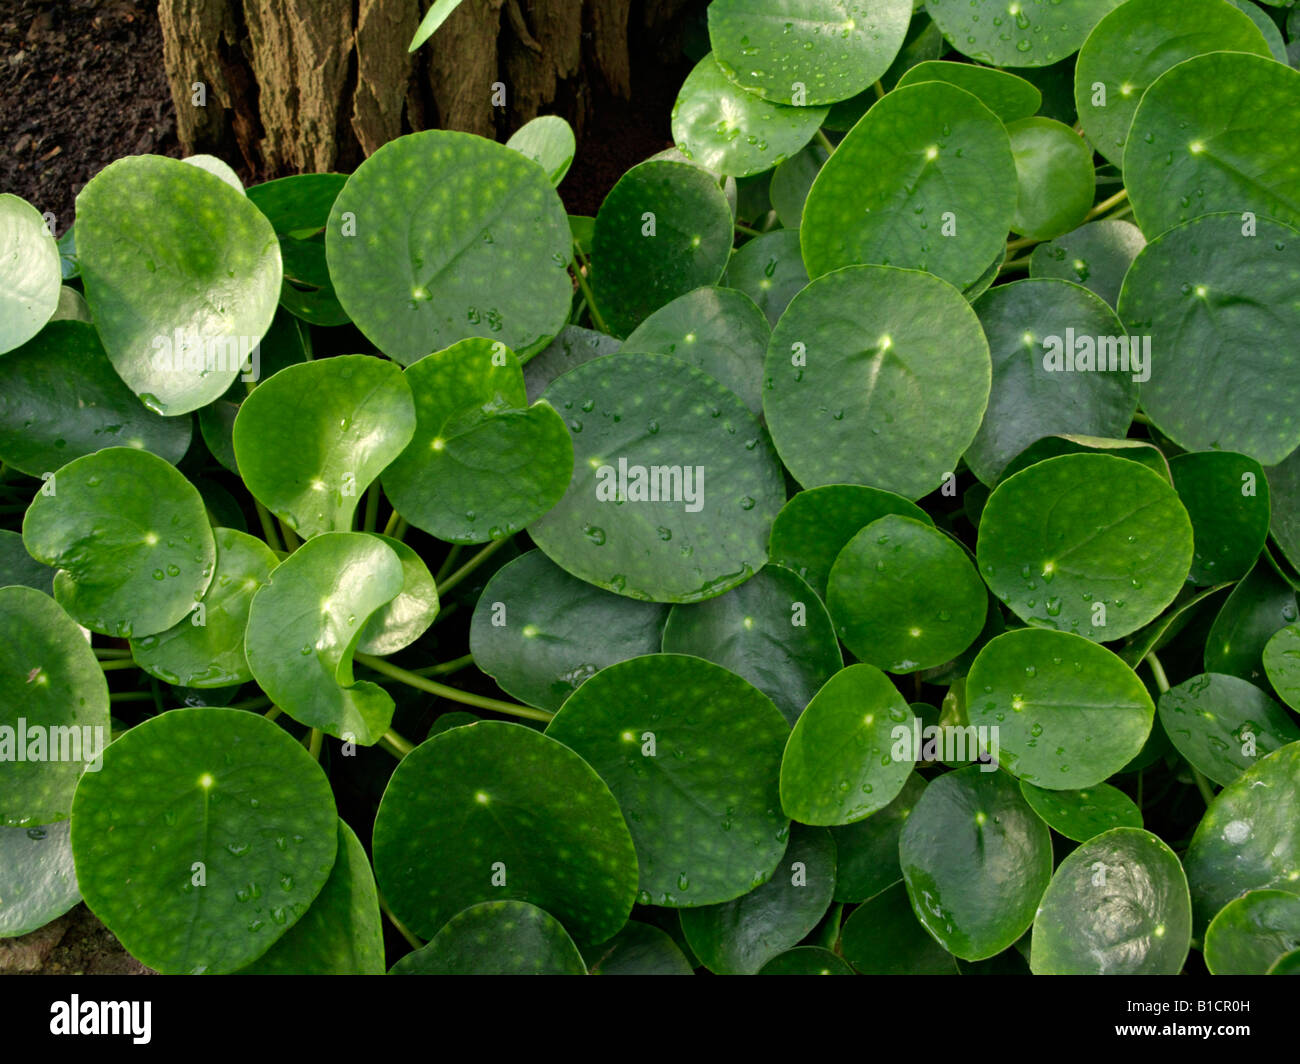 chinese money plant pilea peperomioides stock photo royalty free image 18106497 alamy. Black Bedroom Furniture Sets. Home Design Ideas